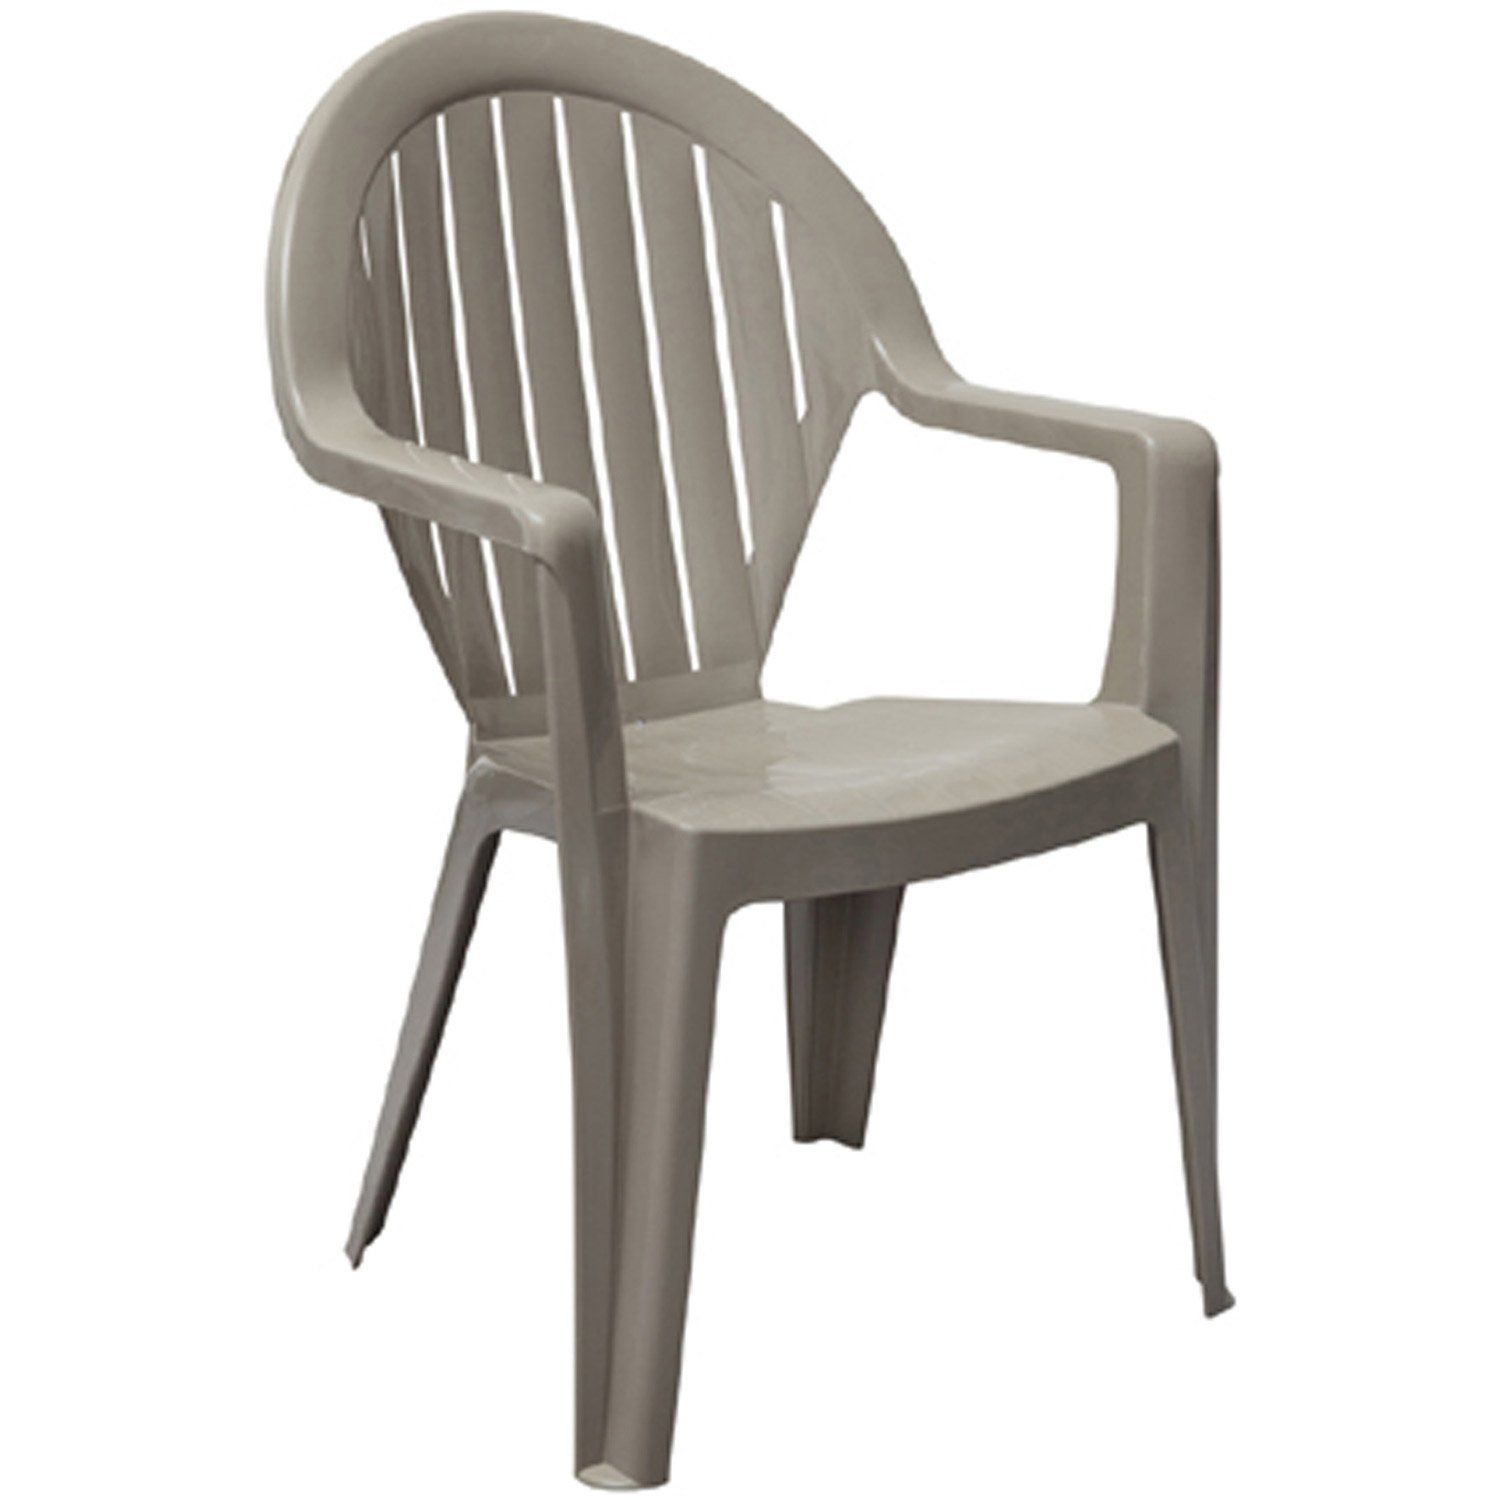 Impressionnant Chaise Plastique Couleur Pas Cher Outdoor Furniture Home Decor Outdoor Chairs